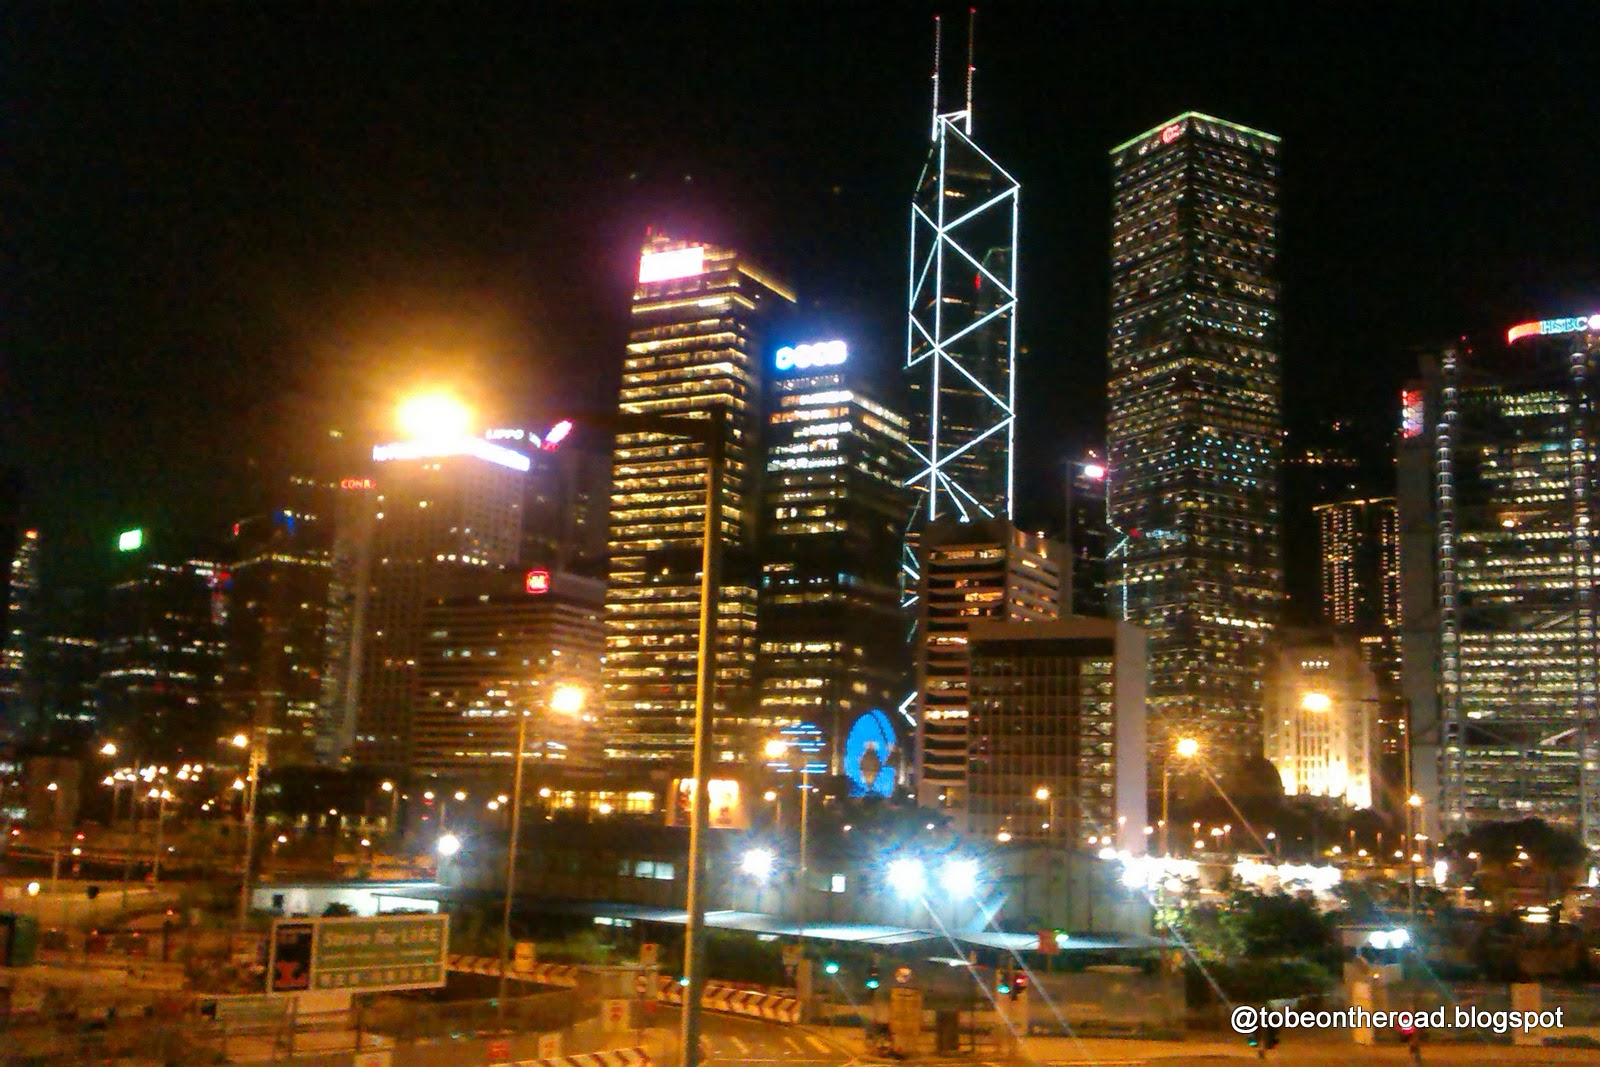 Hongkong,Symphony Of Lights,Star Ferry,Skyscraper,Lantau,Tai O